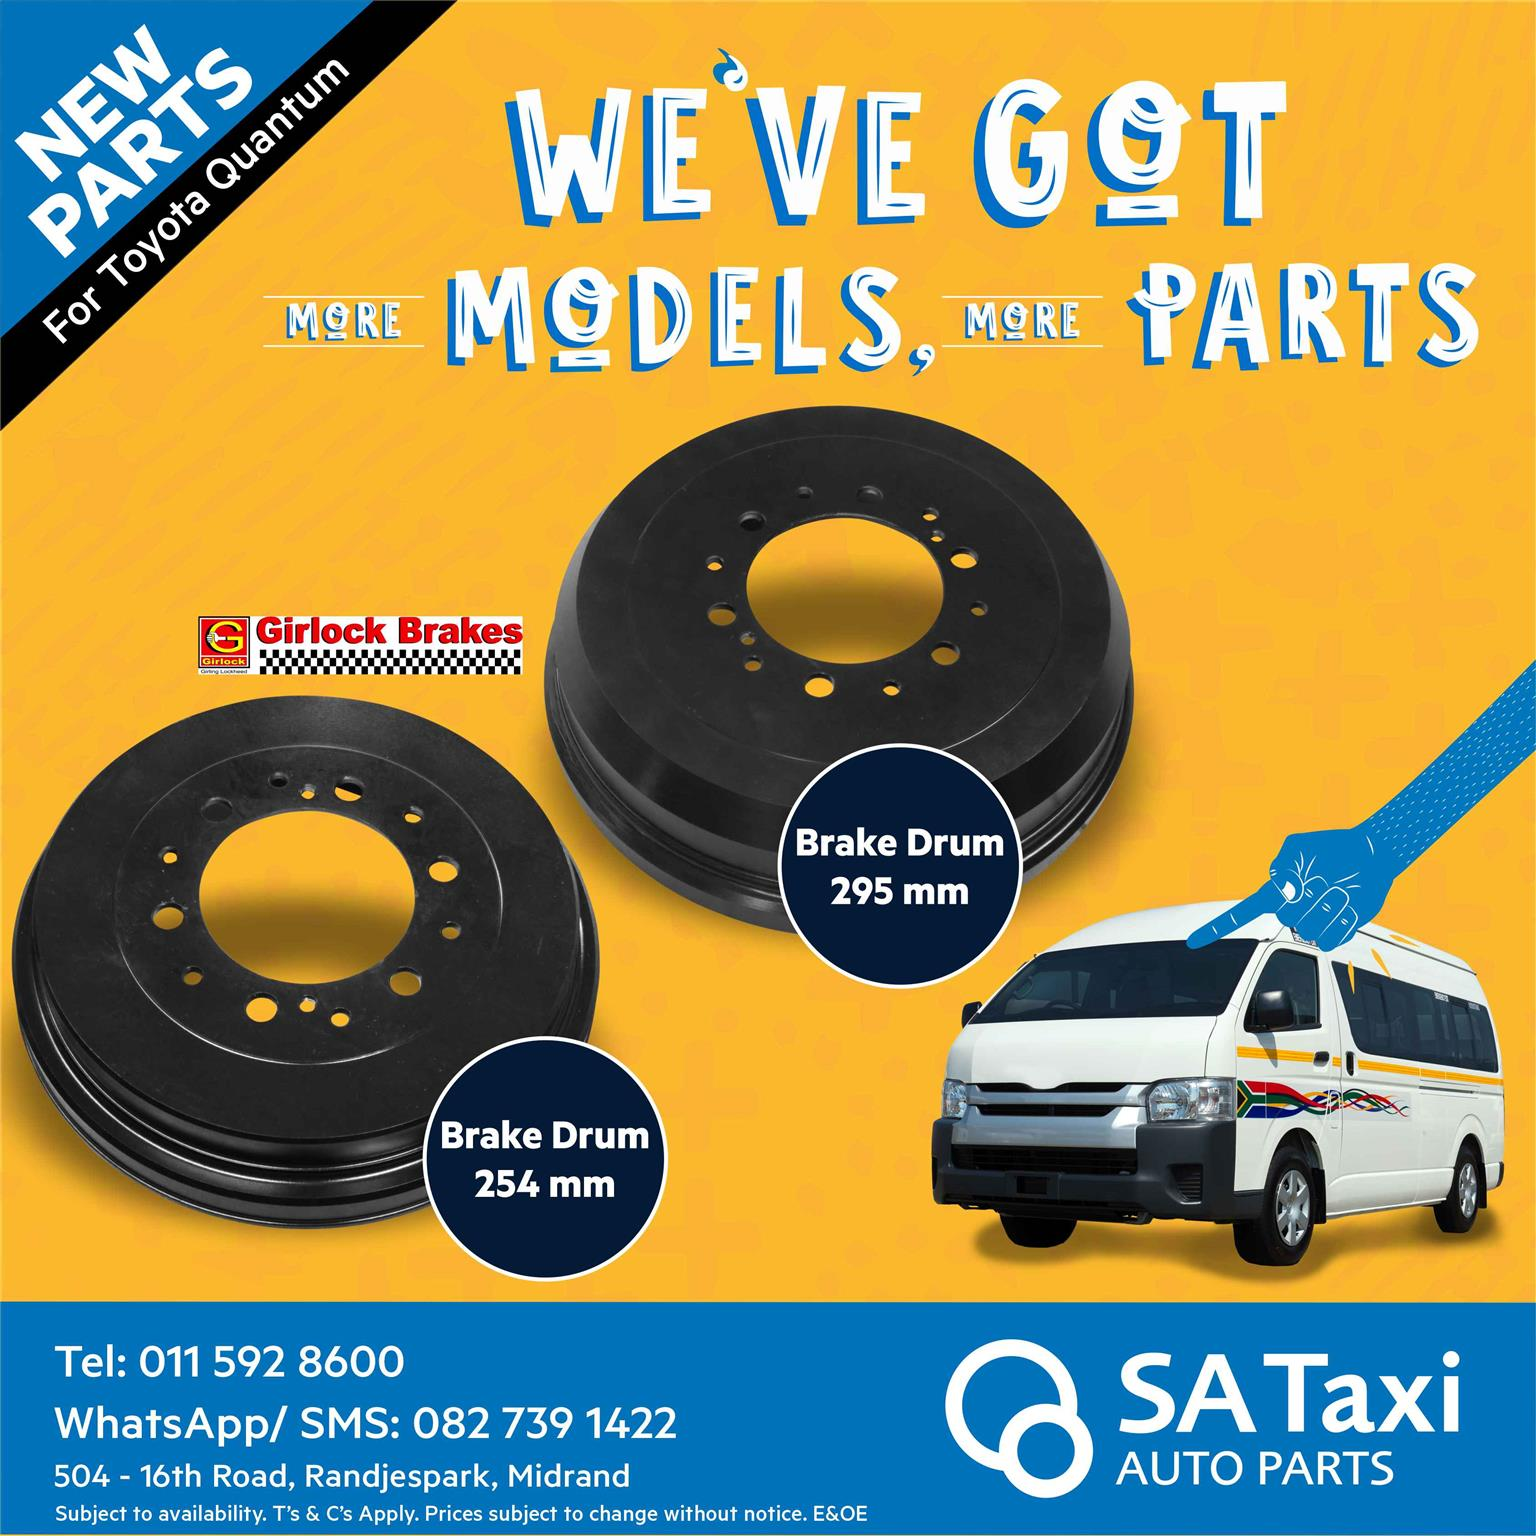 New Girlock Brake Drum suitable for Toyota Quantum - SA Taxi Auto Parts quality taxi spares